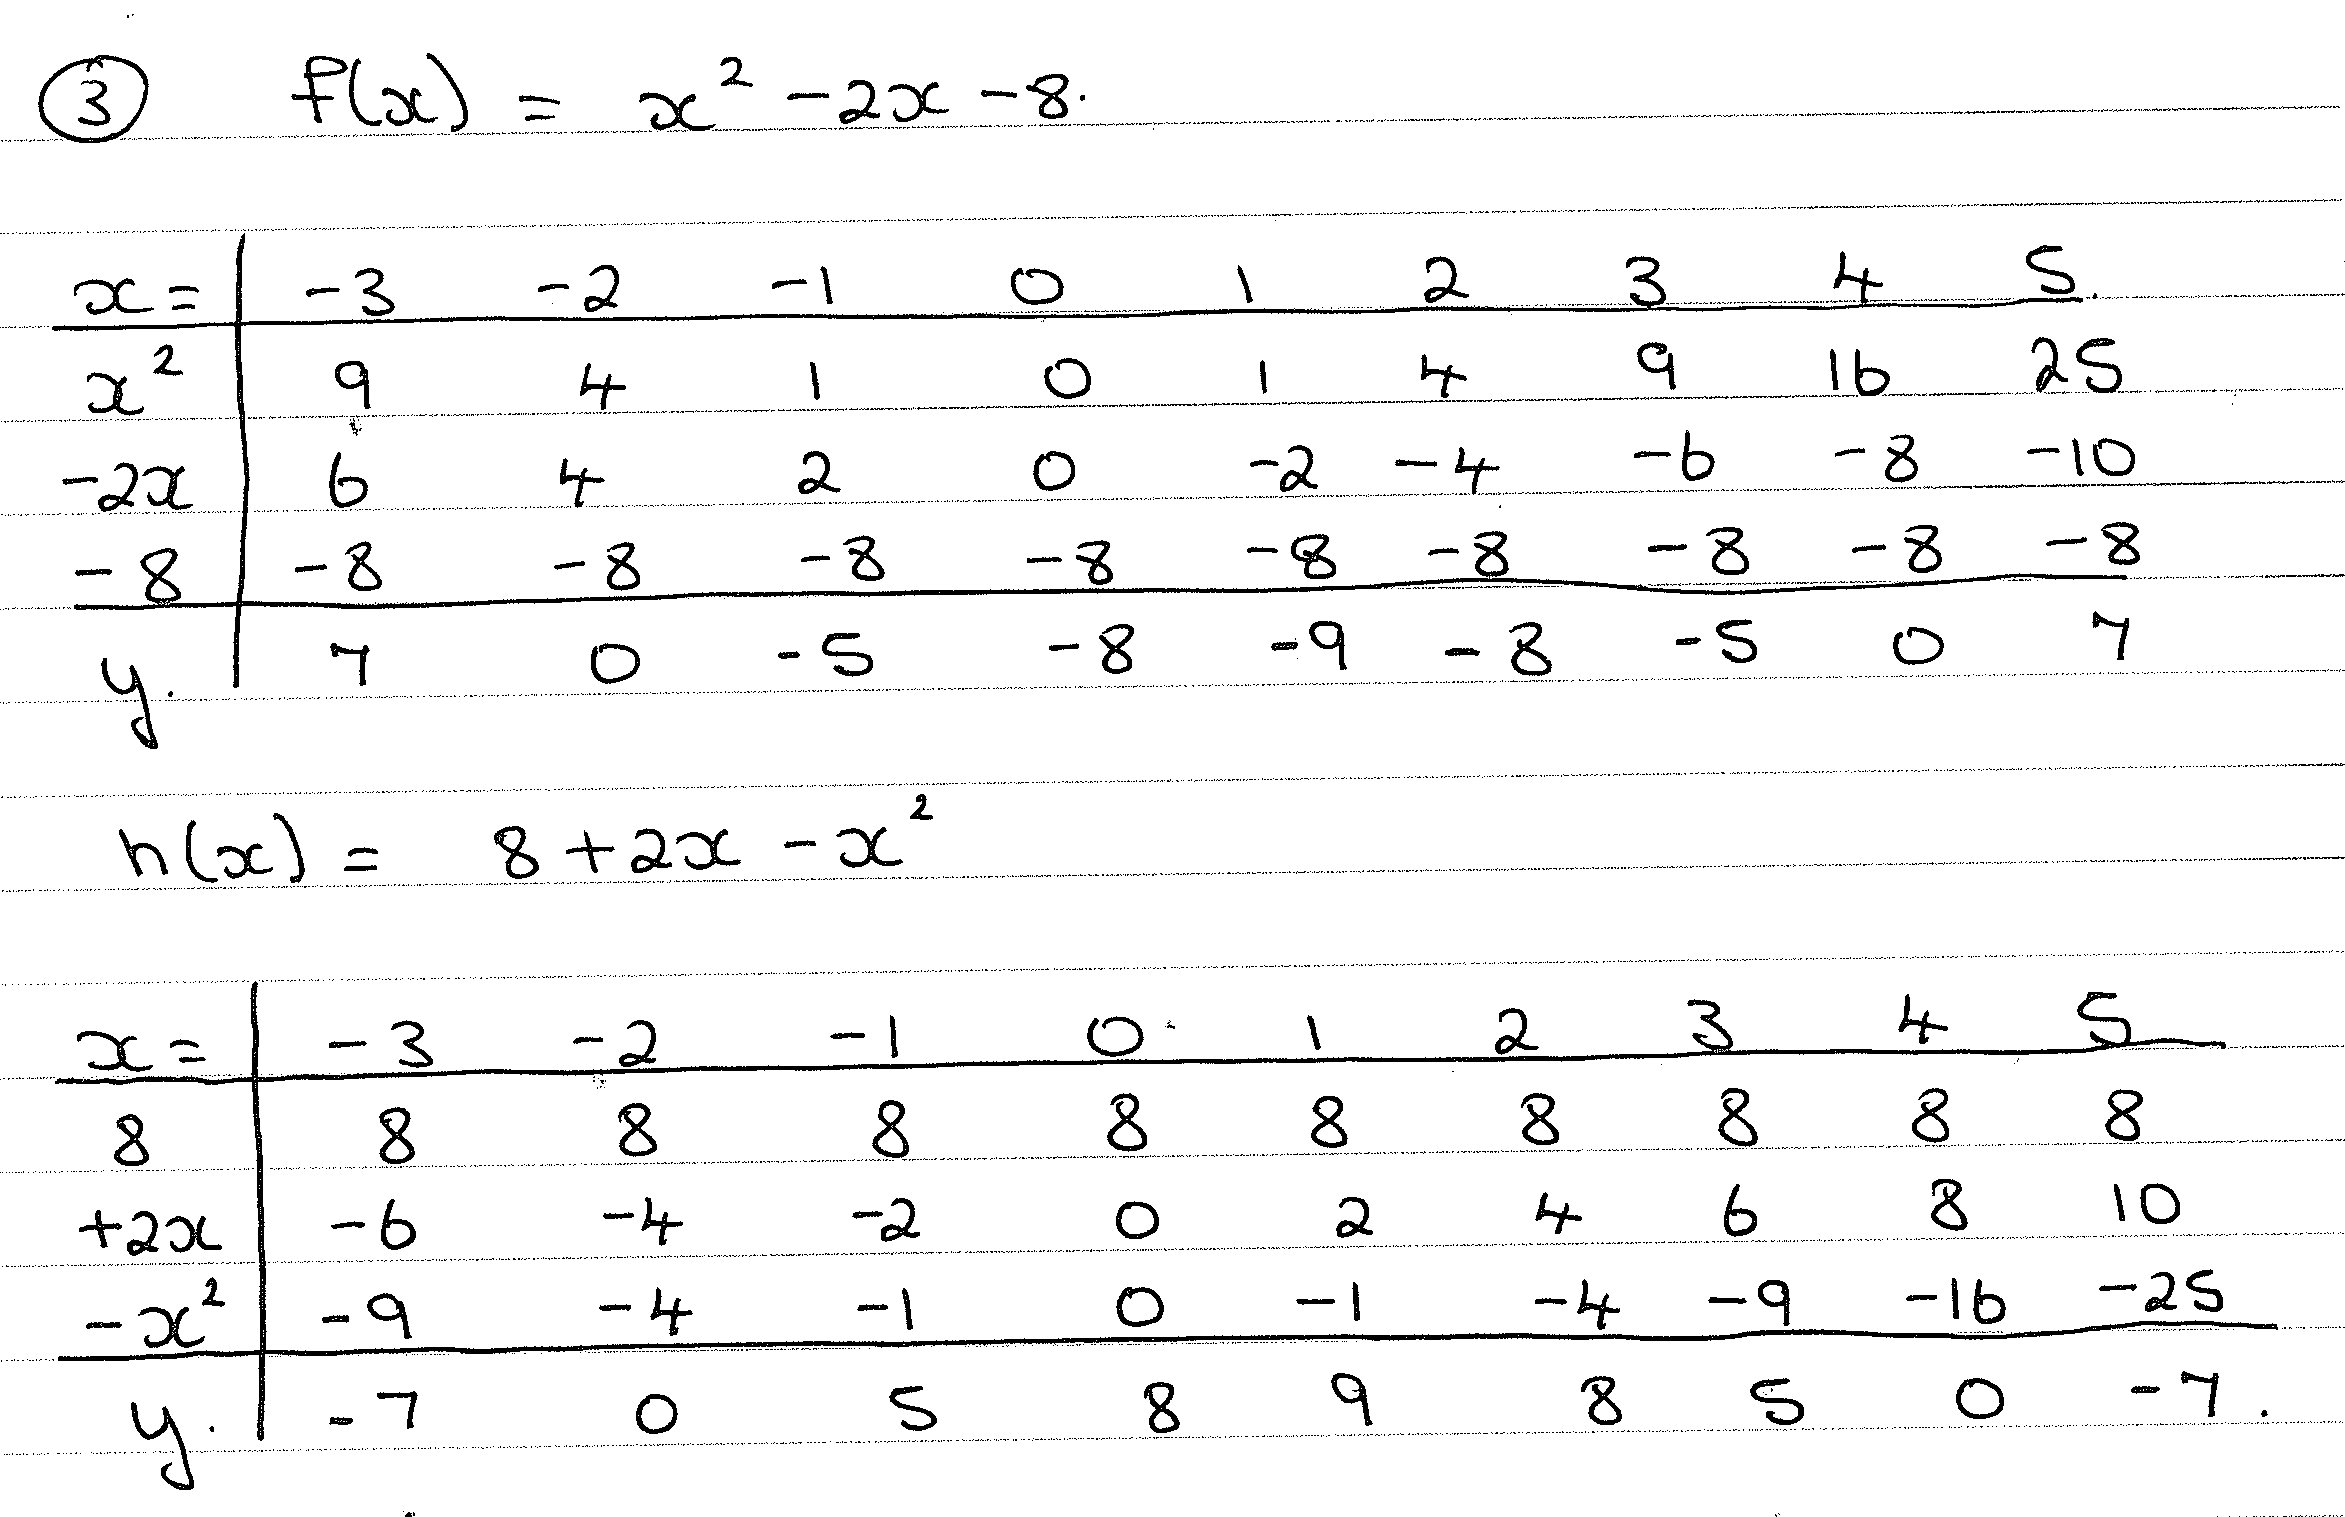 Maths Video Lesson 5 Revision eNotes Worksheet and